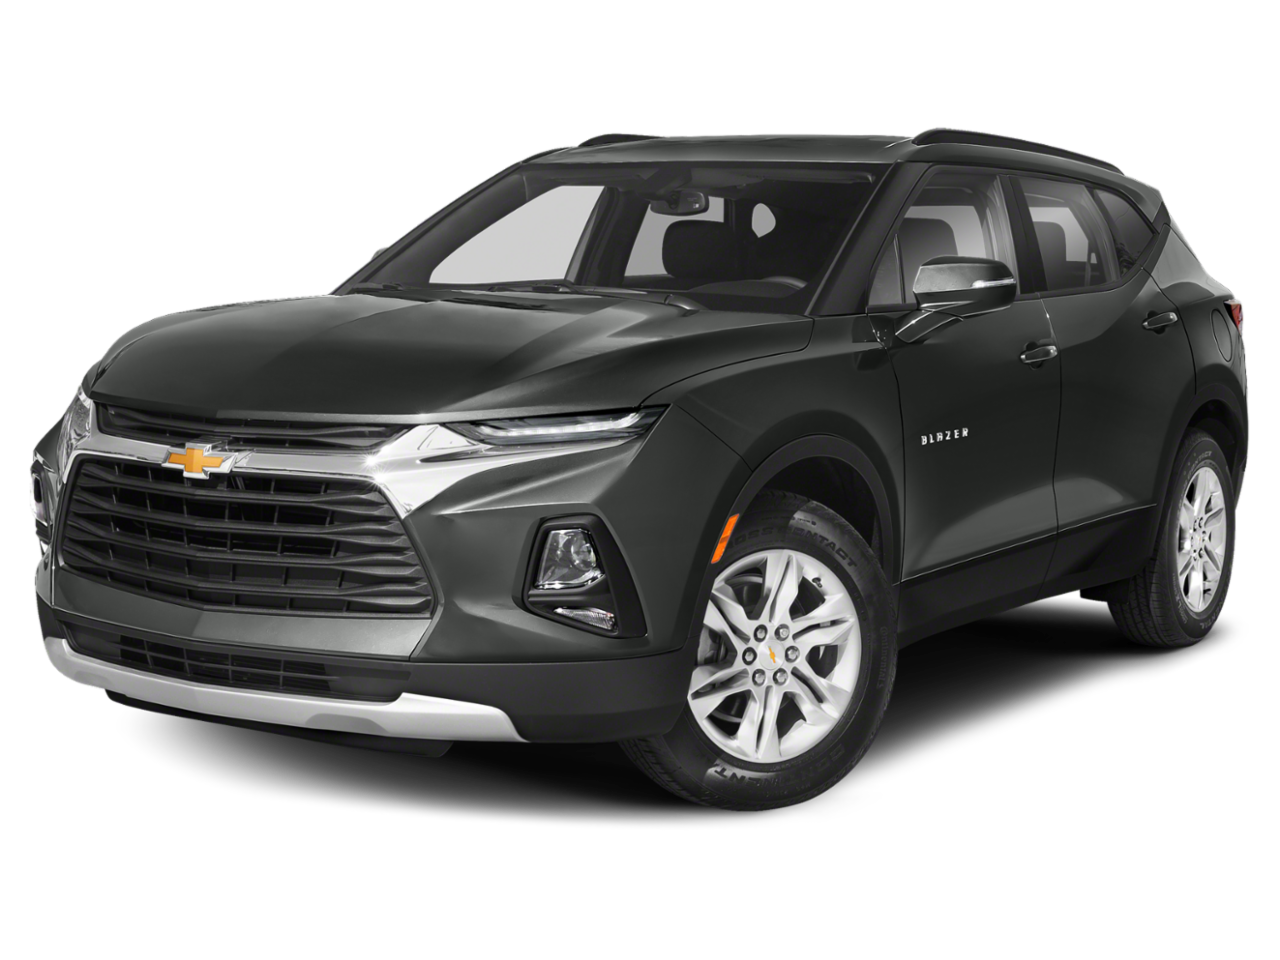 riverview chevrolet in mckeesport a homestead pa and monroeville dealer alternative riverview chevrolet in mckeesport a